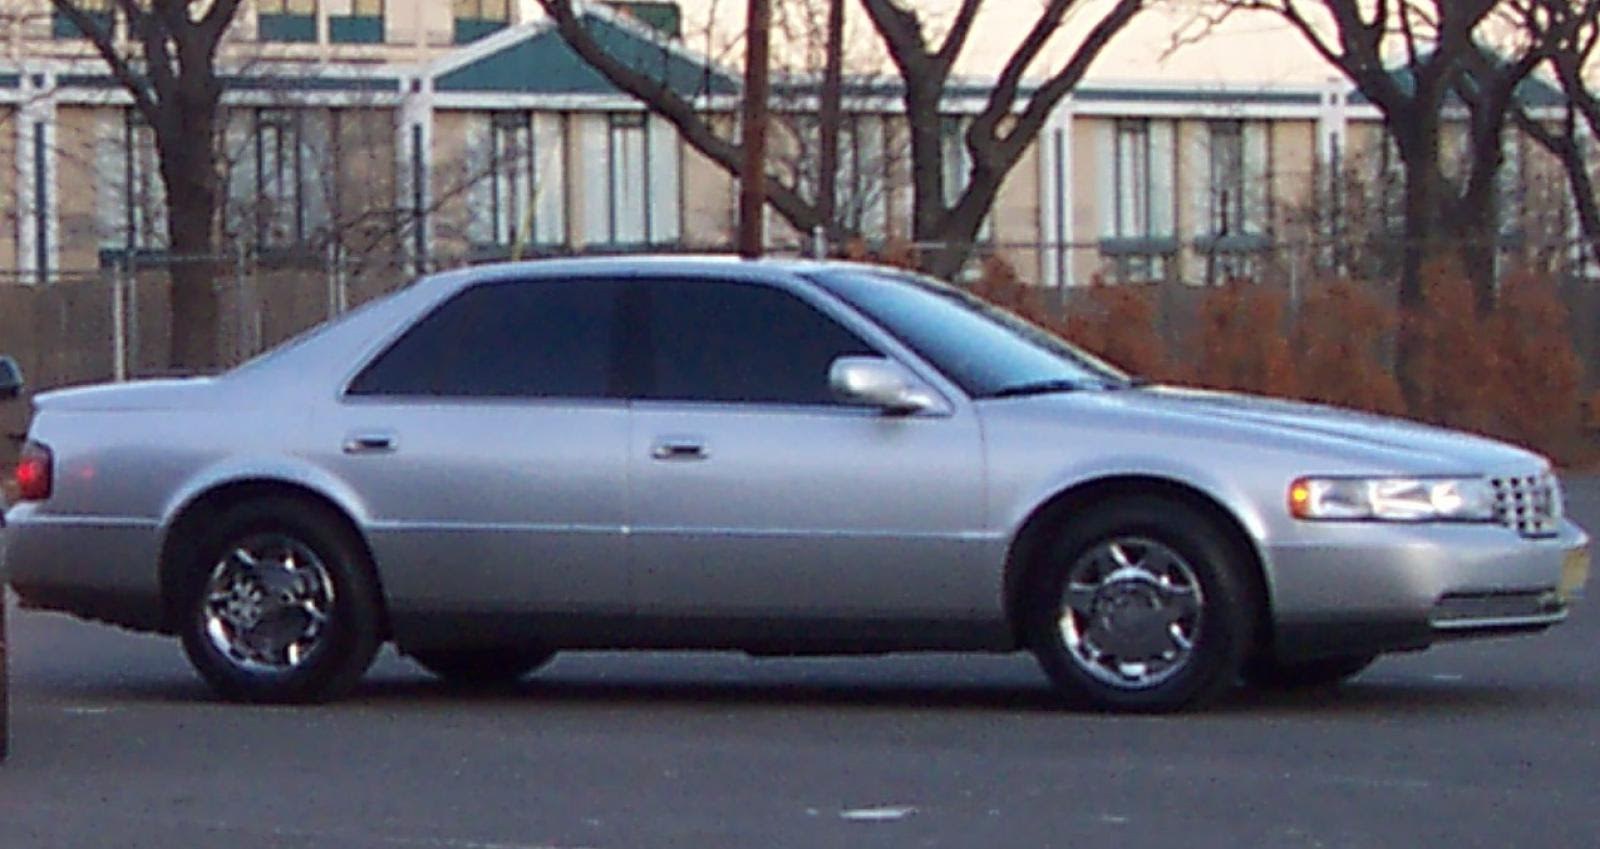 1999 Cadillac Seville - Information and photos - Zomb Drive